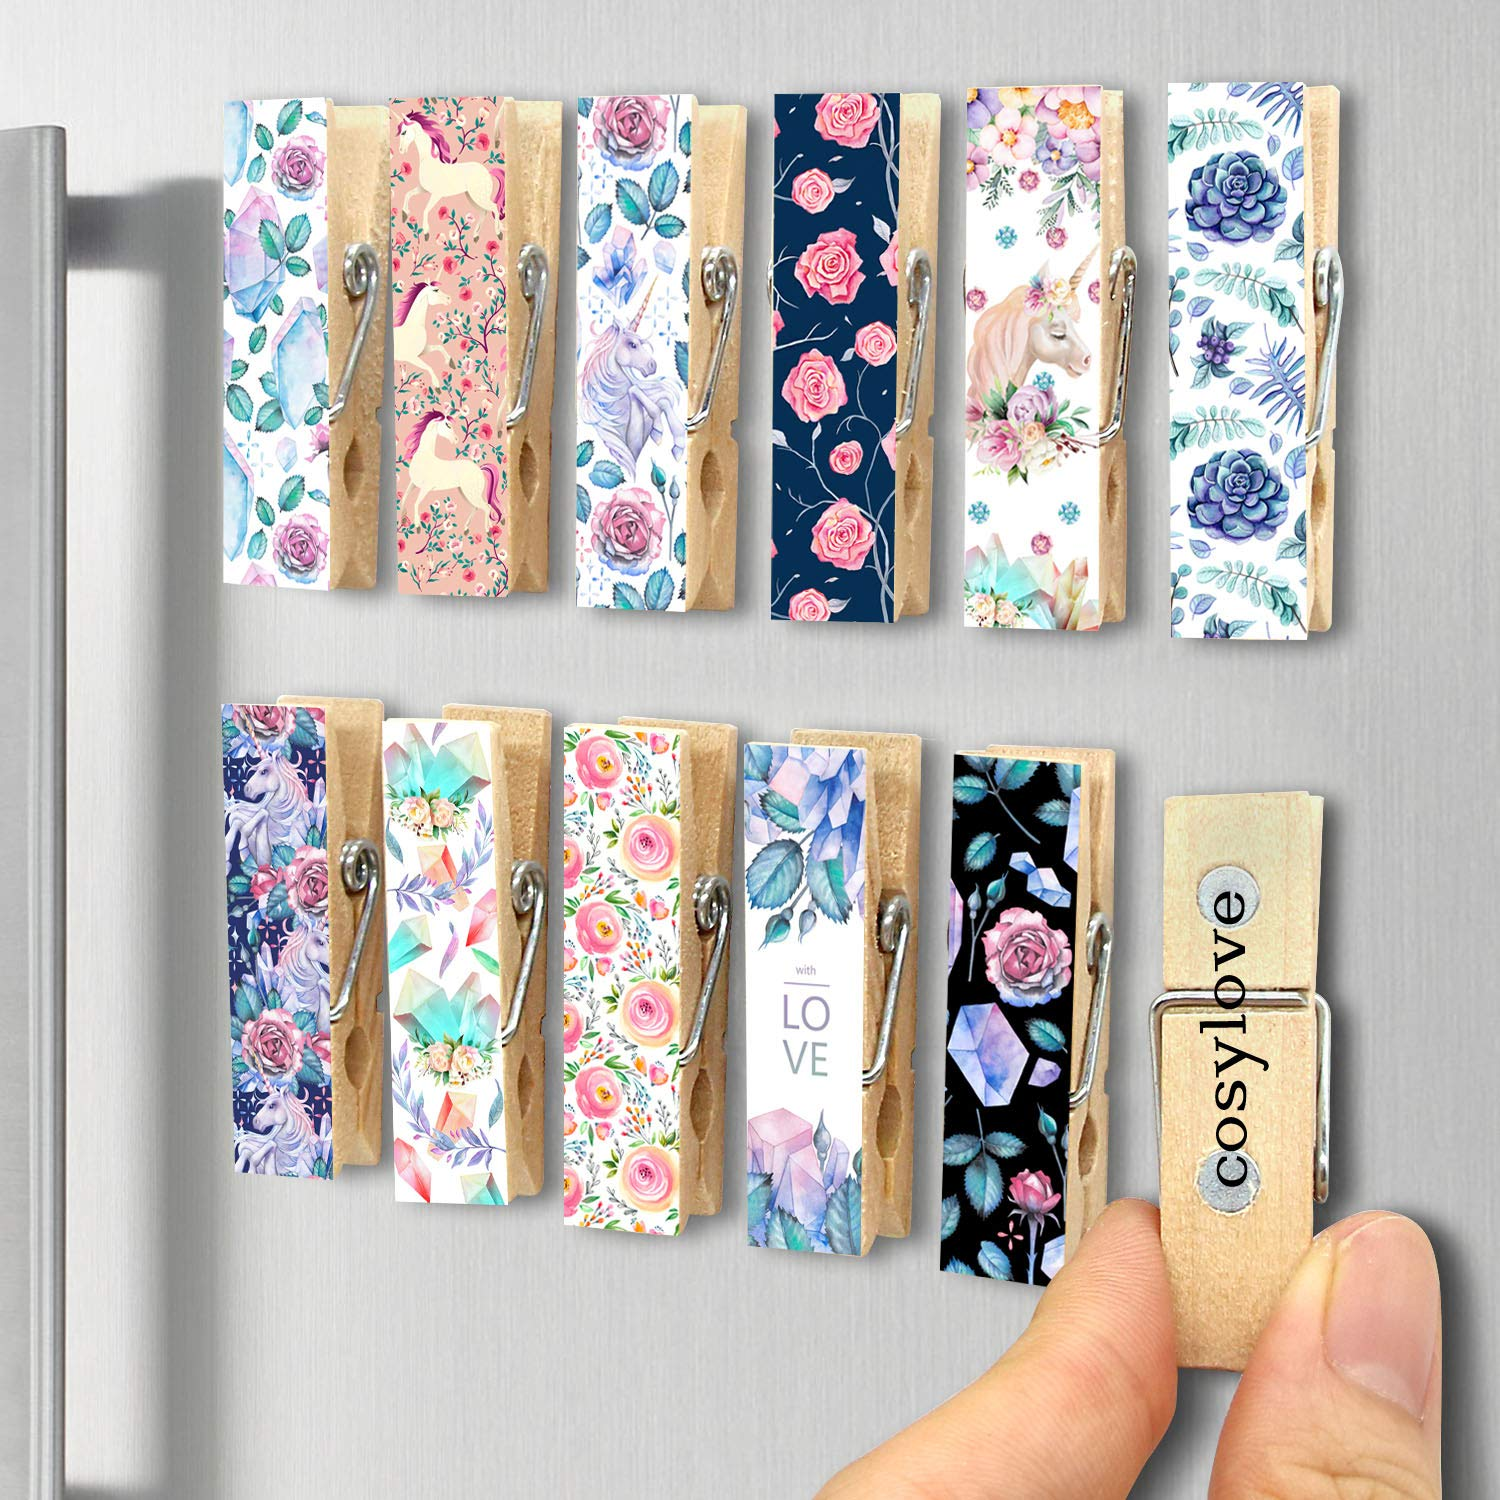 12pcs Refrigerator Magnet Clips by Cosylove-Decorative Magnetic Clips Made of Wood with Beautiful Patterns–Super Fridge Magnets for House Office Use - Display Photos,Memos, Lists, Calendars (unicorn)